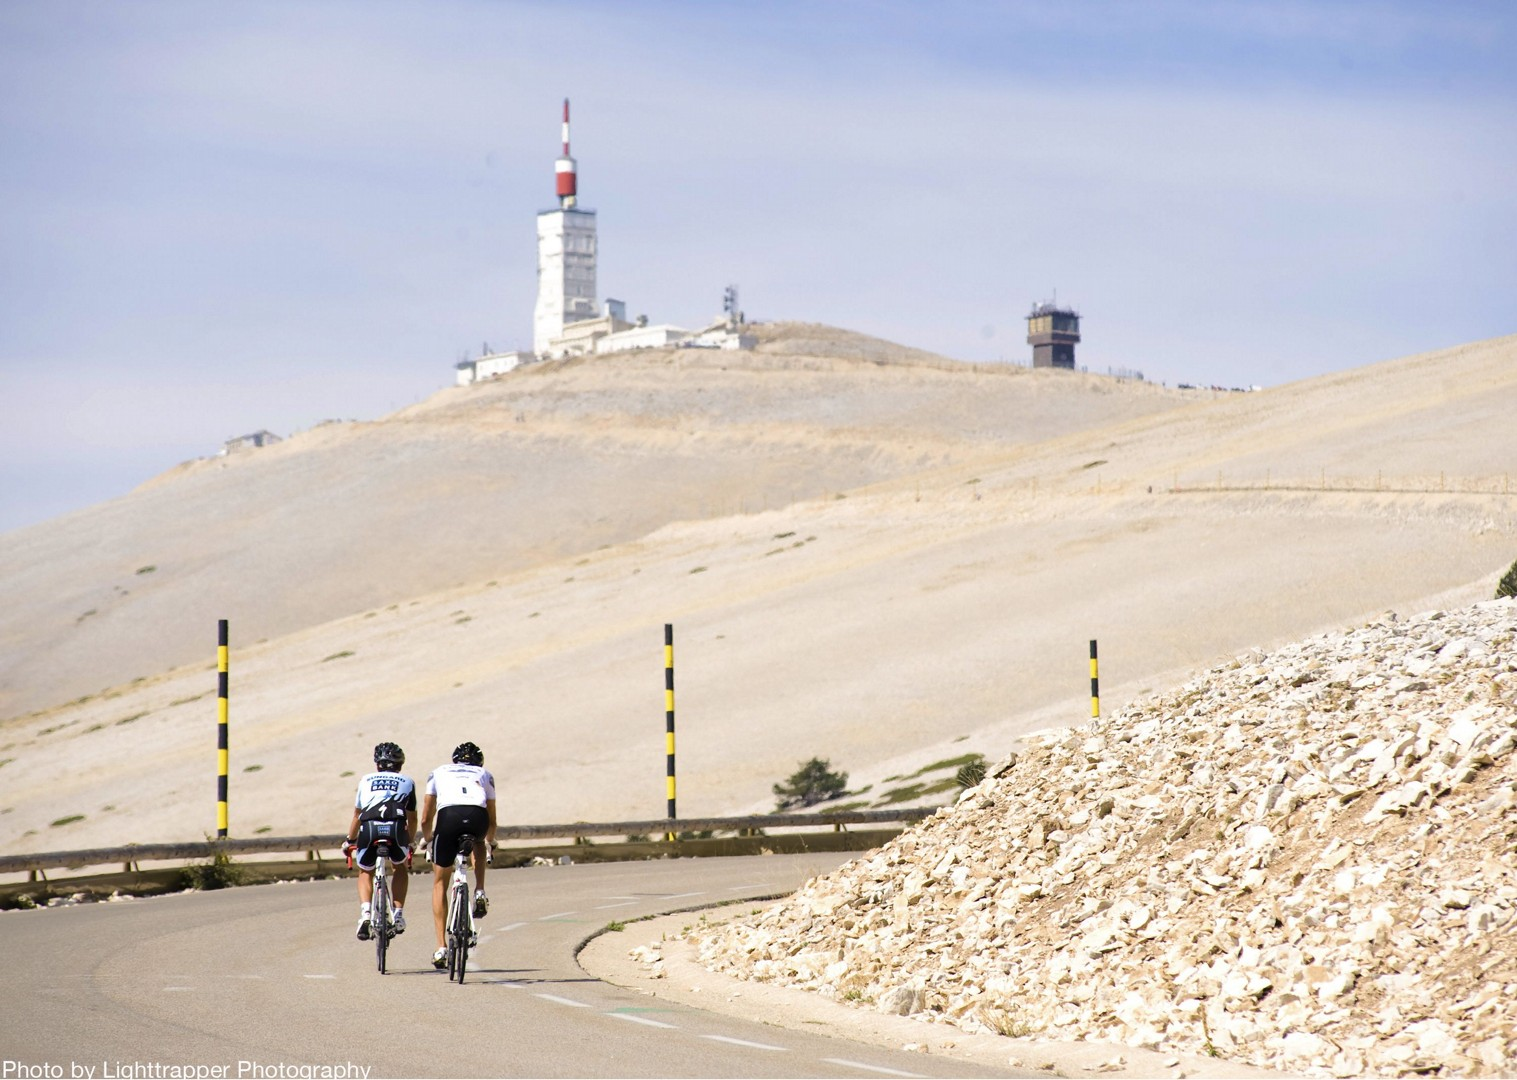 ventoux_day6-158 copy.jpg - France - St Malo to Nice Challenge (12 days) - Guided Road Cycling Holiday - Road Cycling